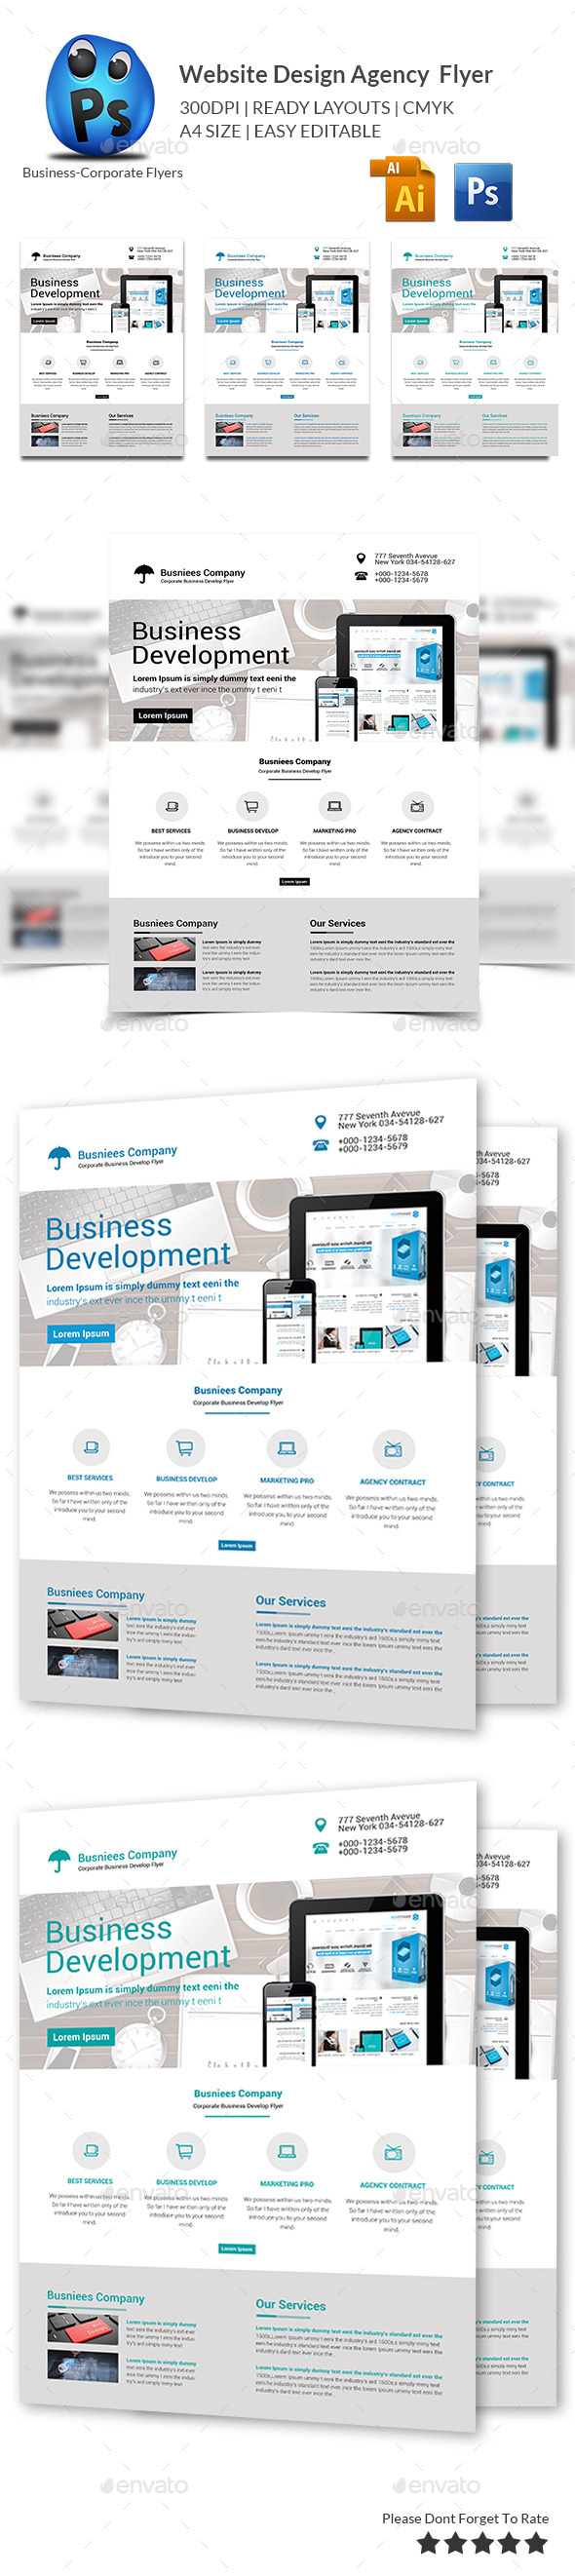 GraphicRiver Website Design Agency Flyer 10028595